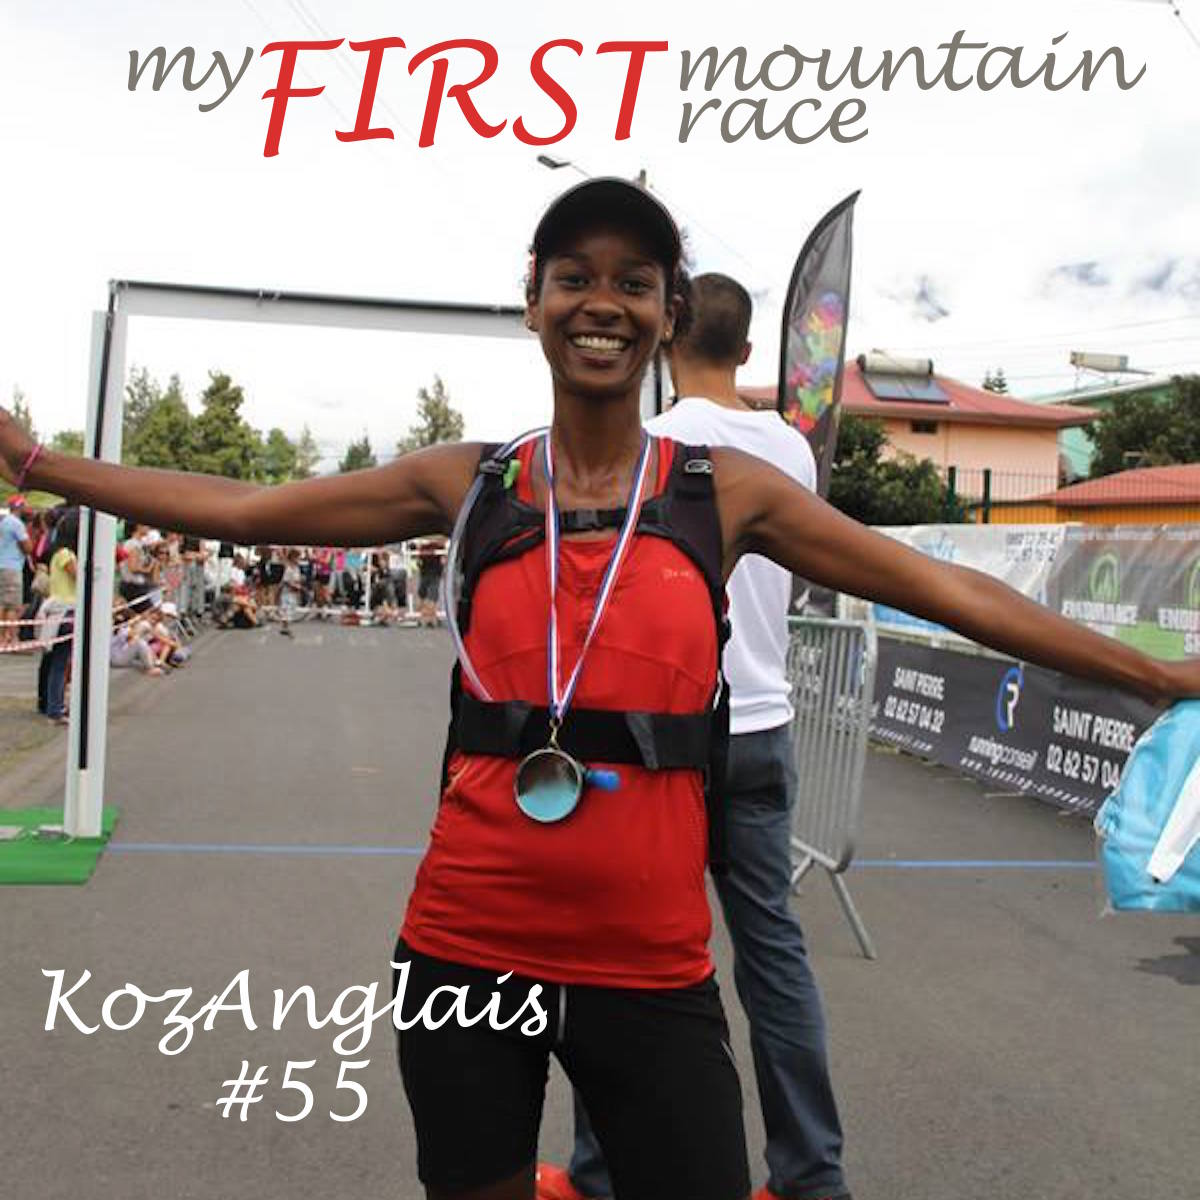 55 - My First Mountain Race - Slow